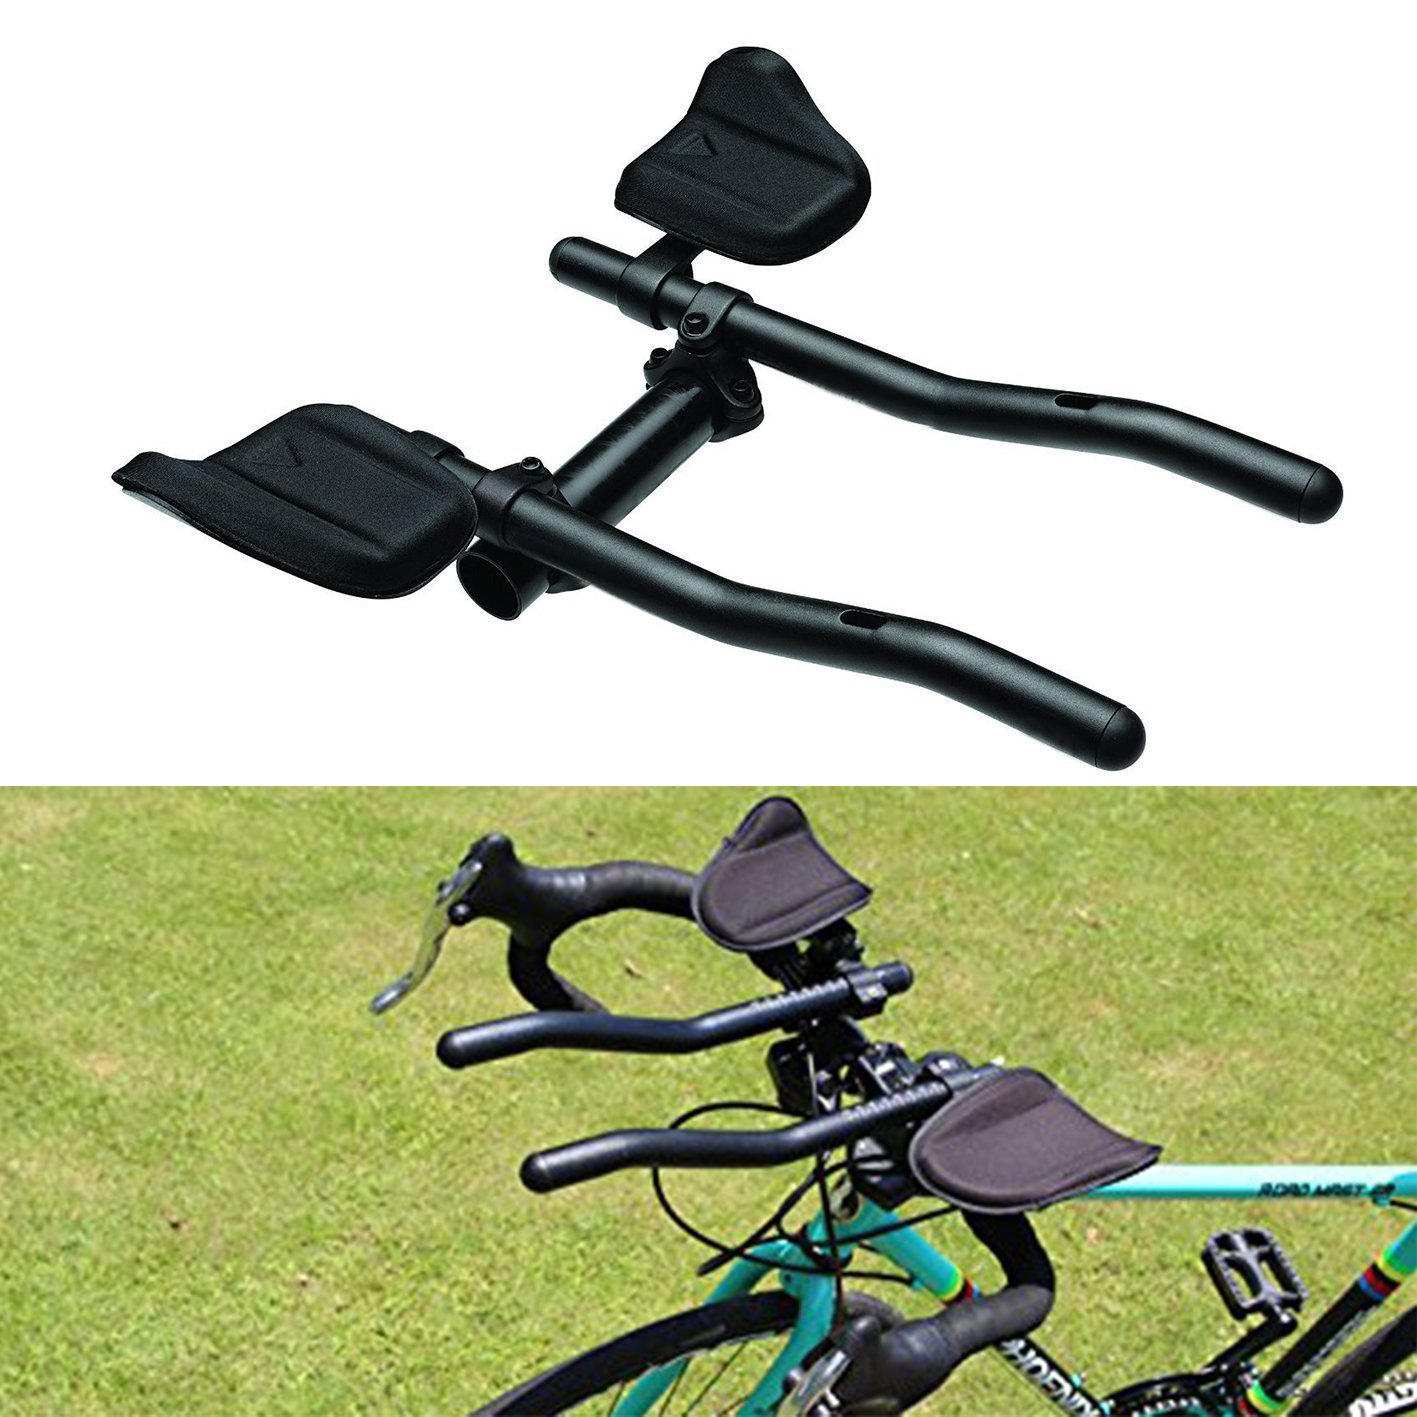 Triathlon Aero Bars hybike T1 Bicycle Clip-on TT Handlebar Tri Bars Cycling Rest Handlebar-- T-6061 Alloy handlebar extension for Moutain Bike or Road Bike